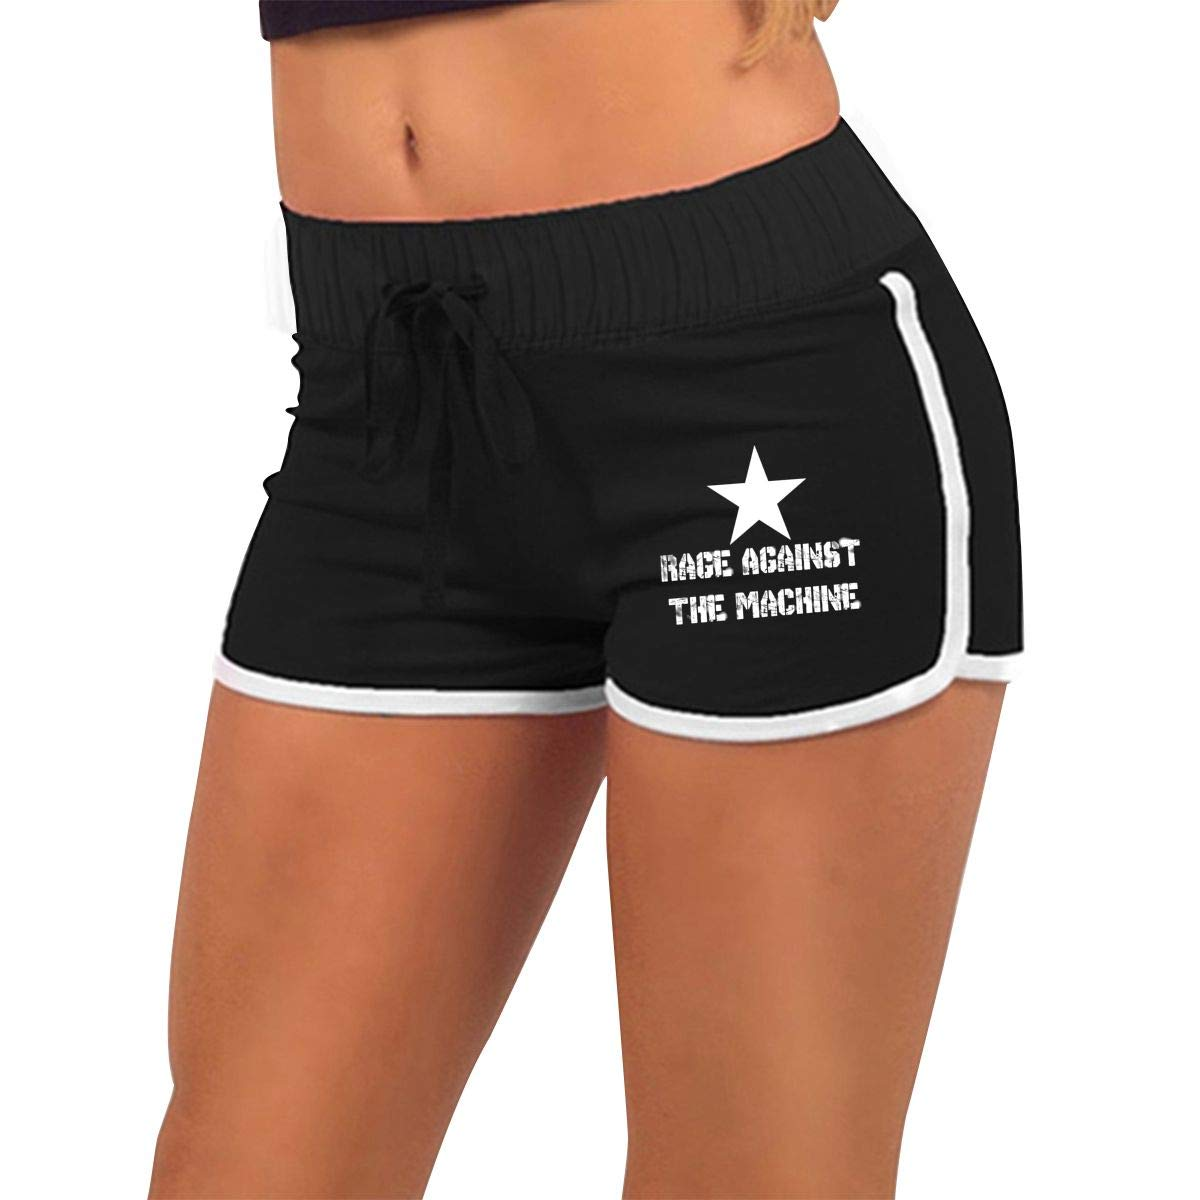 Rage Against The Machine Anarchy Women's Workout Shorts,Casual Fashion Waist Drawstring Workout Shorts